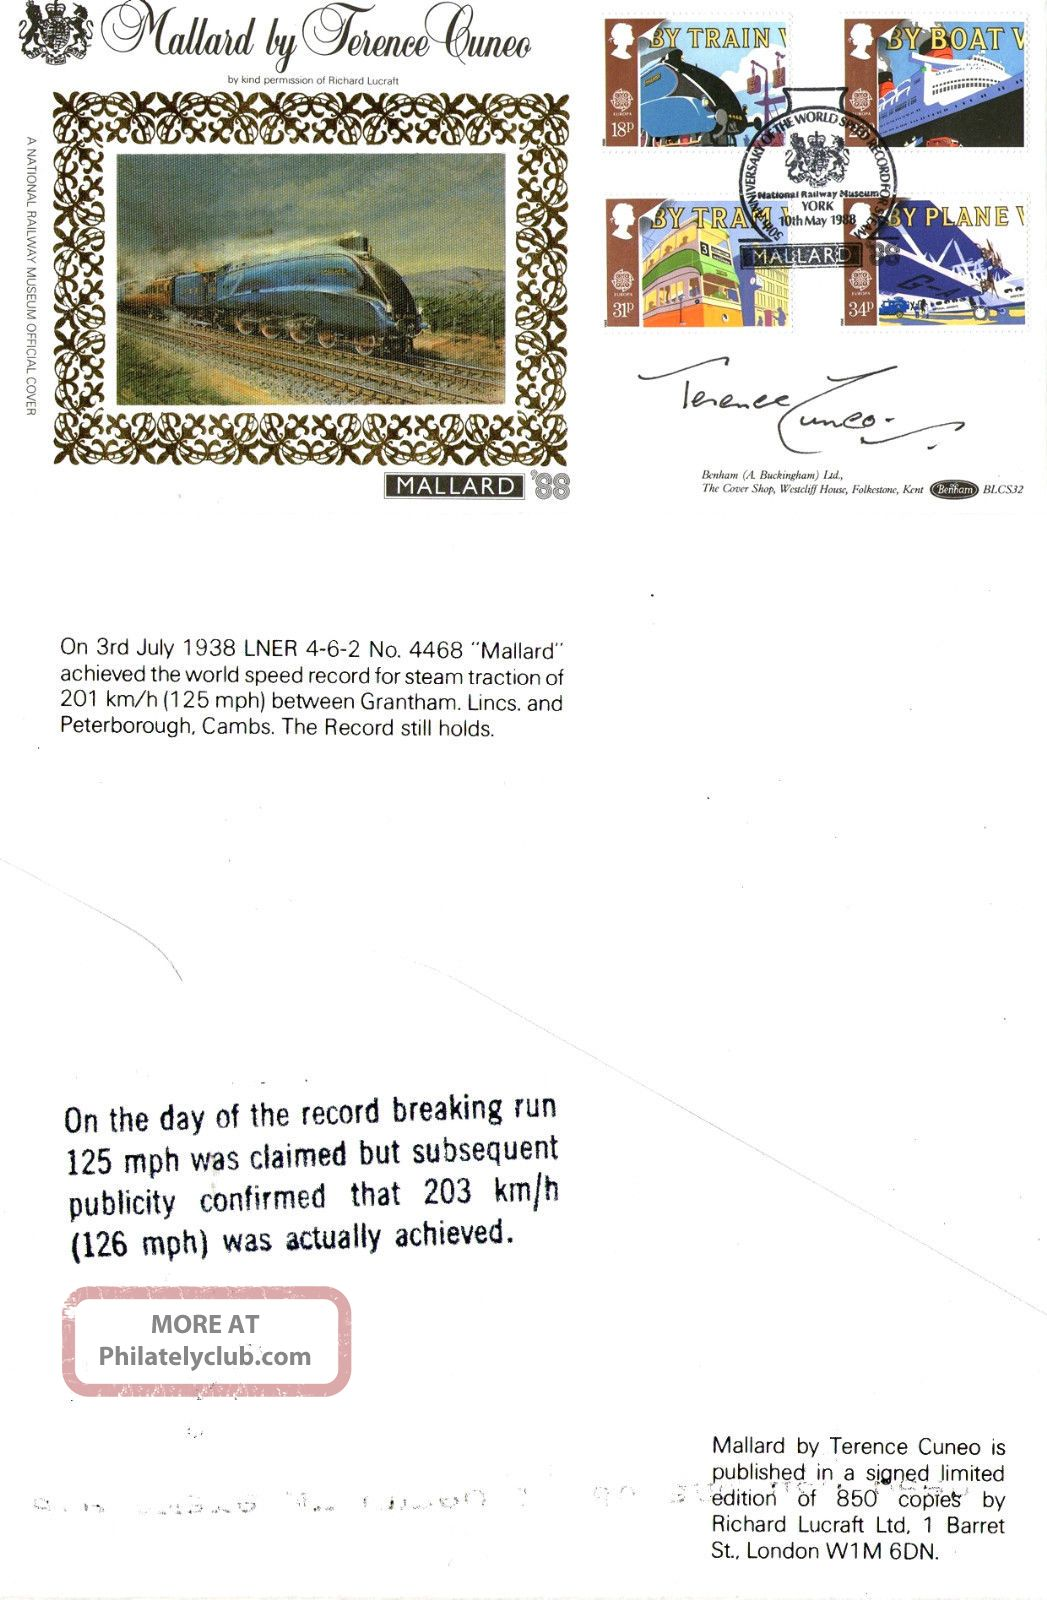 10 May 1988 Transport Signed Terence Cuneo Benham First Day Cover York Shs Transportation photo